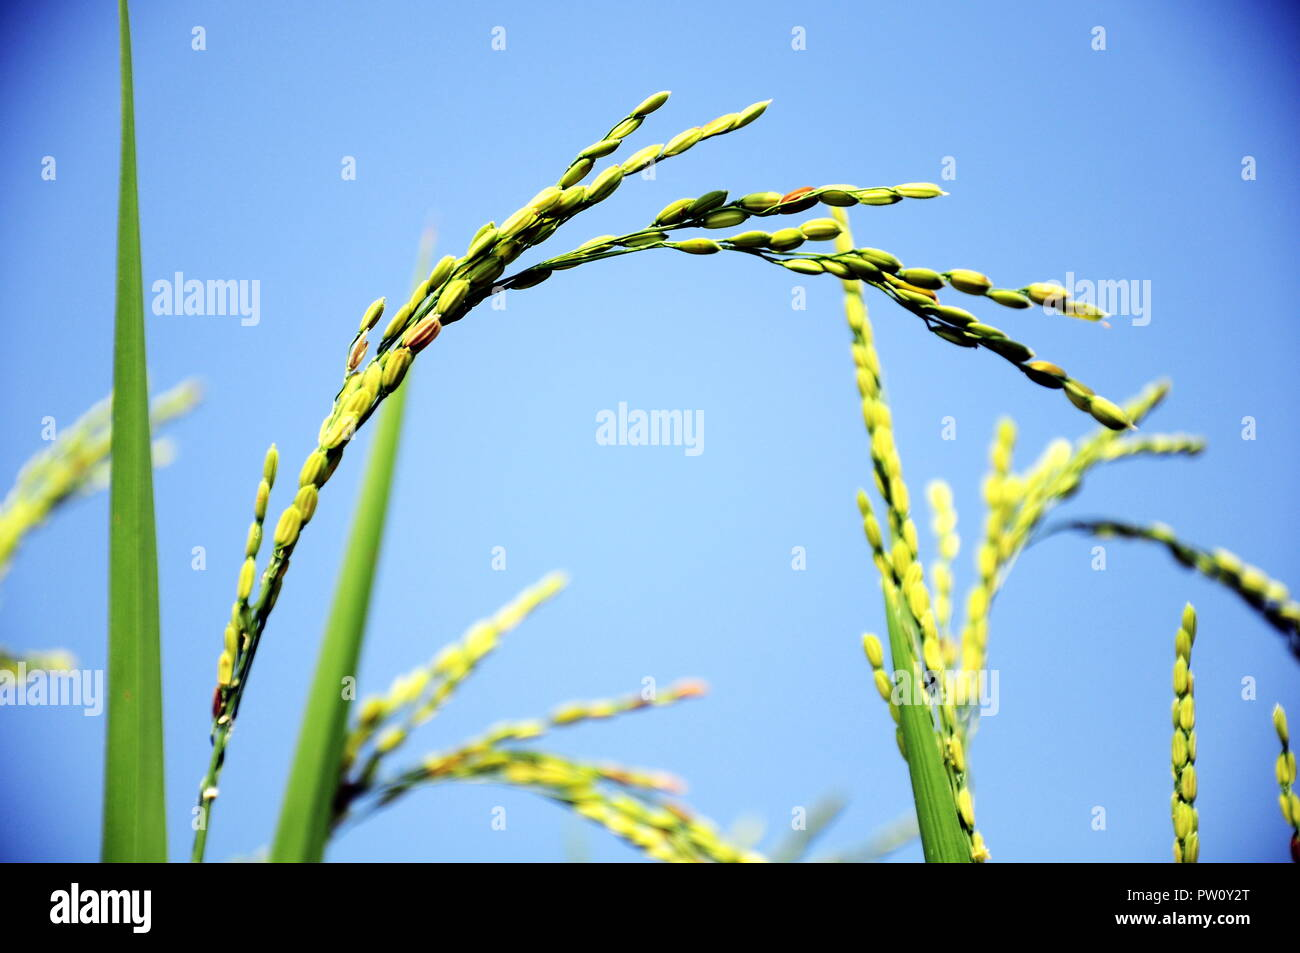 The rice - crop in Mu Cang Chai, Viet Nam - Stock Image